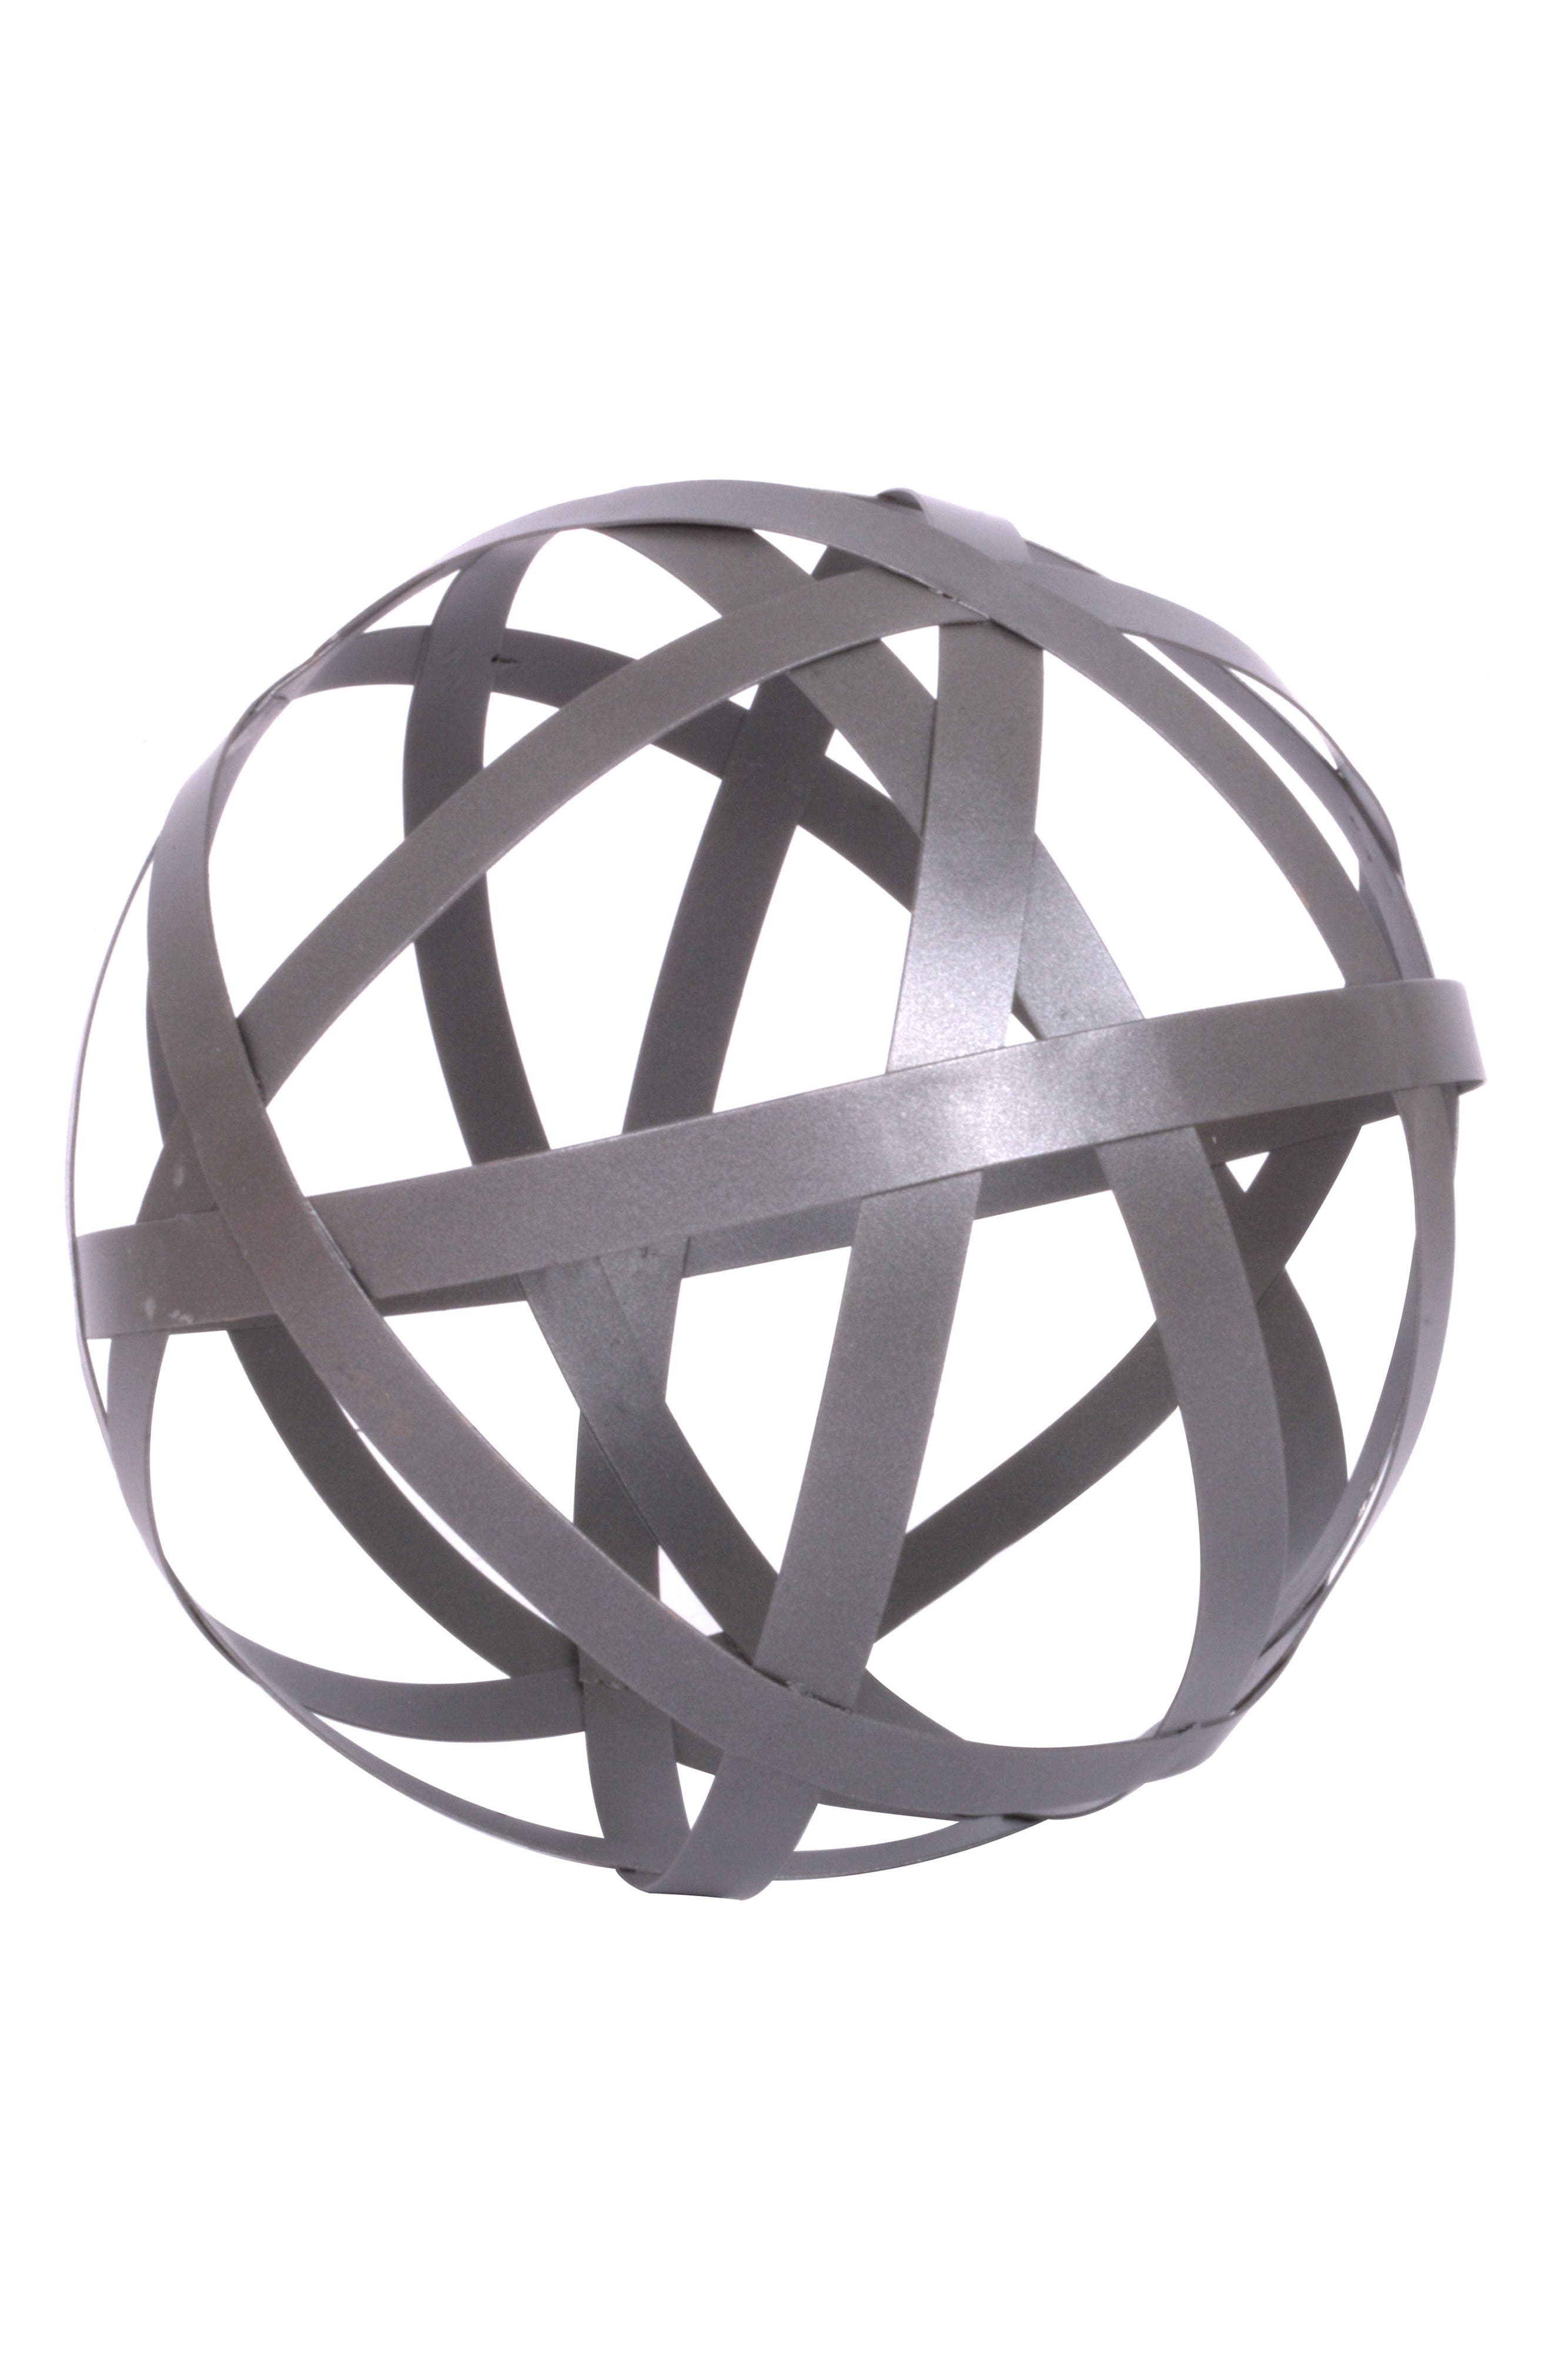 Main Image - Crystal Art Gallery Metal Orb Tabletop Decoration